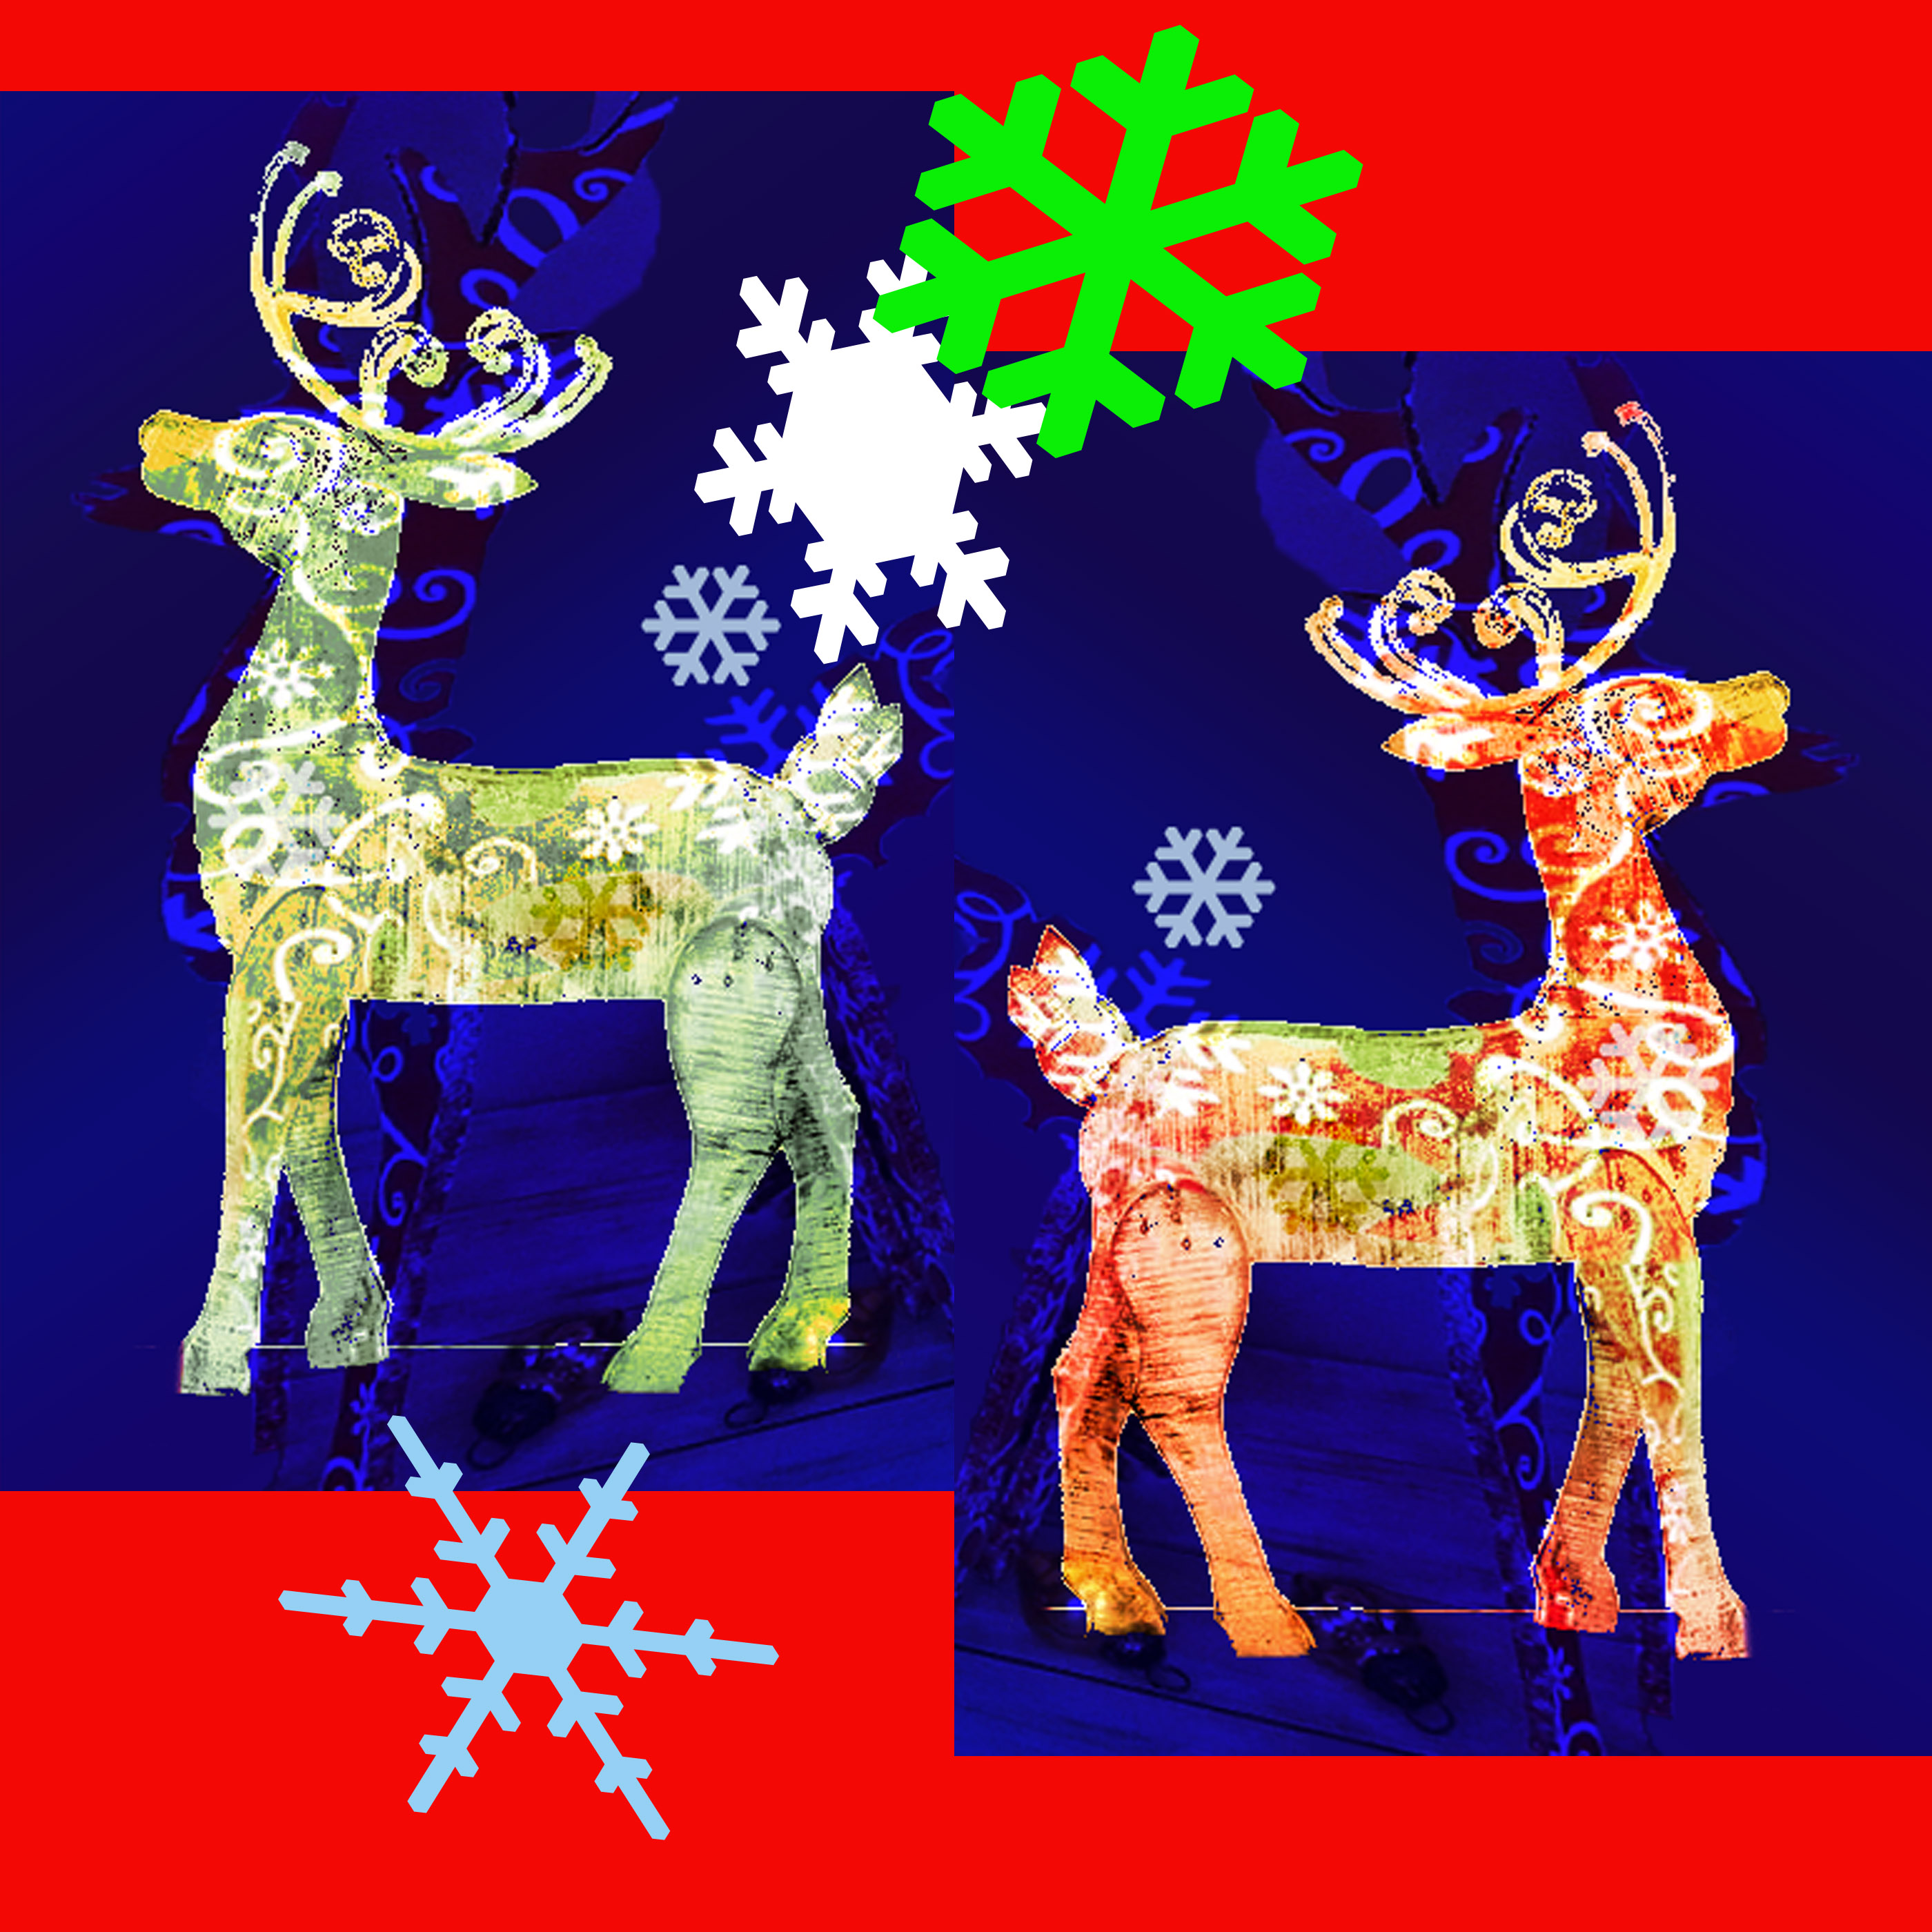 Santas workshop - painted reindeer